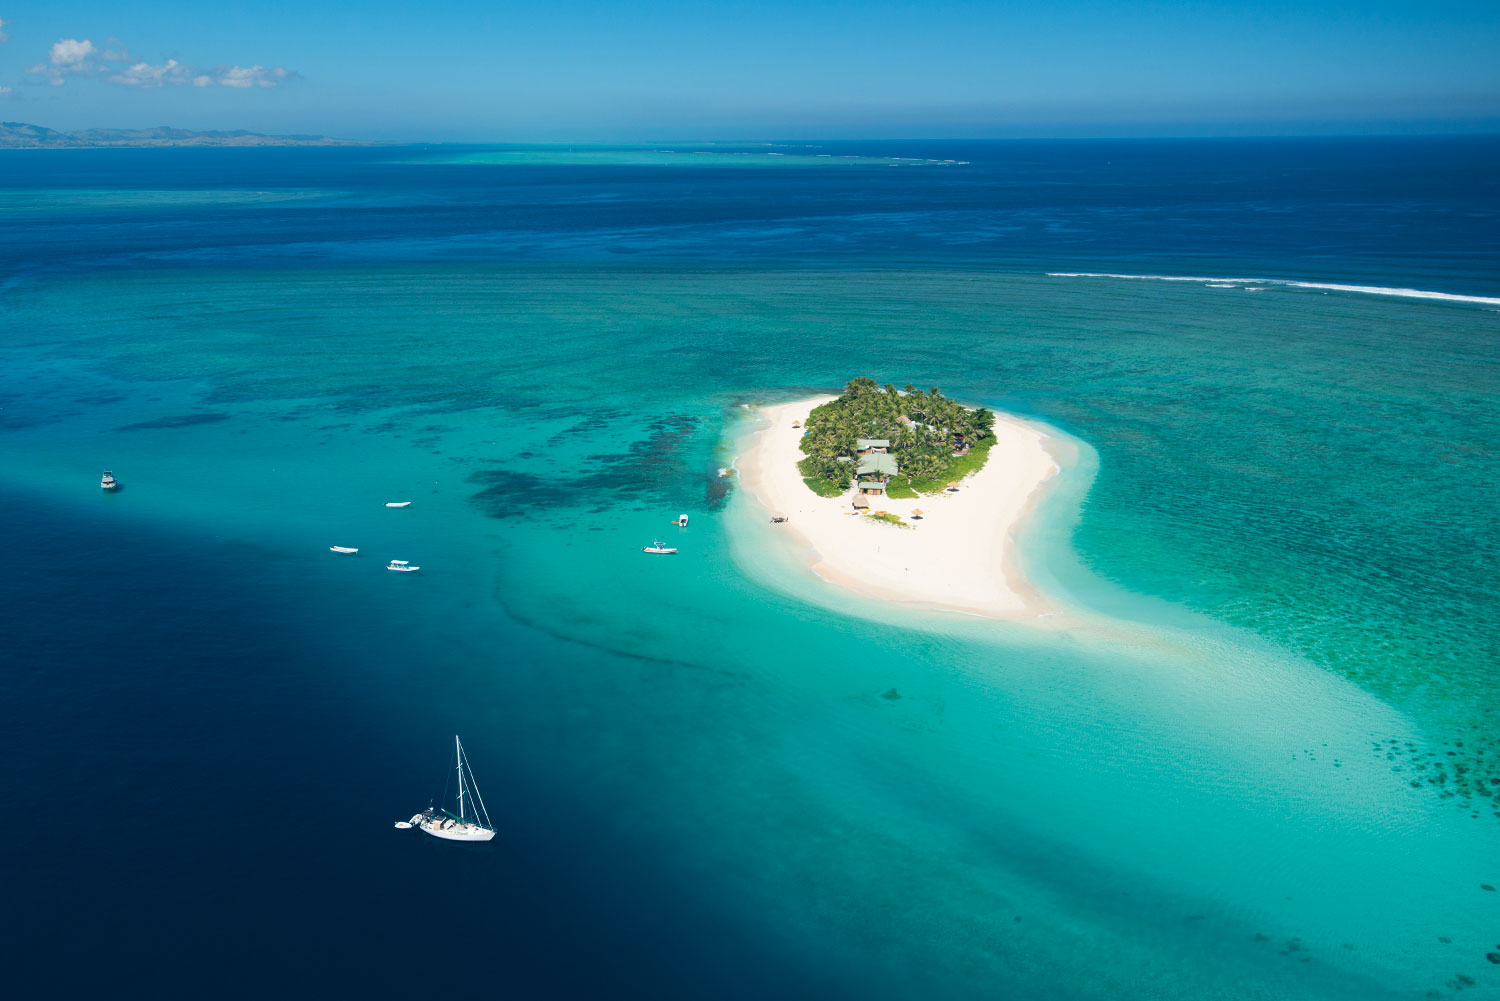 Fiji was voted best beach holiday destination in International Traveller's Readers' Choice Awards 2015.